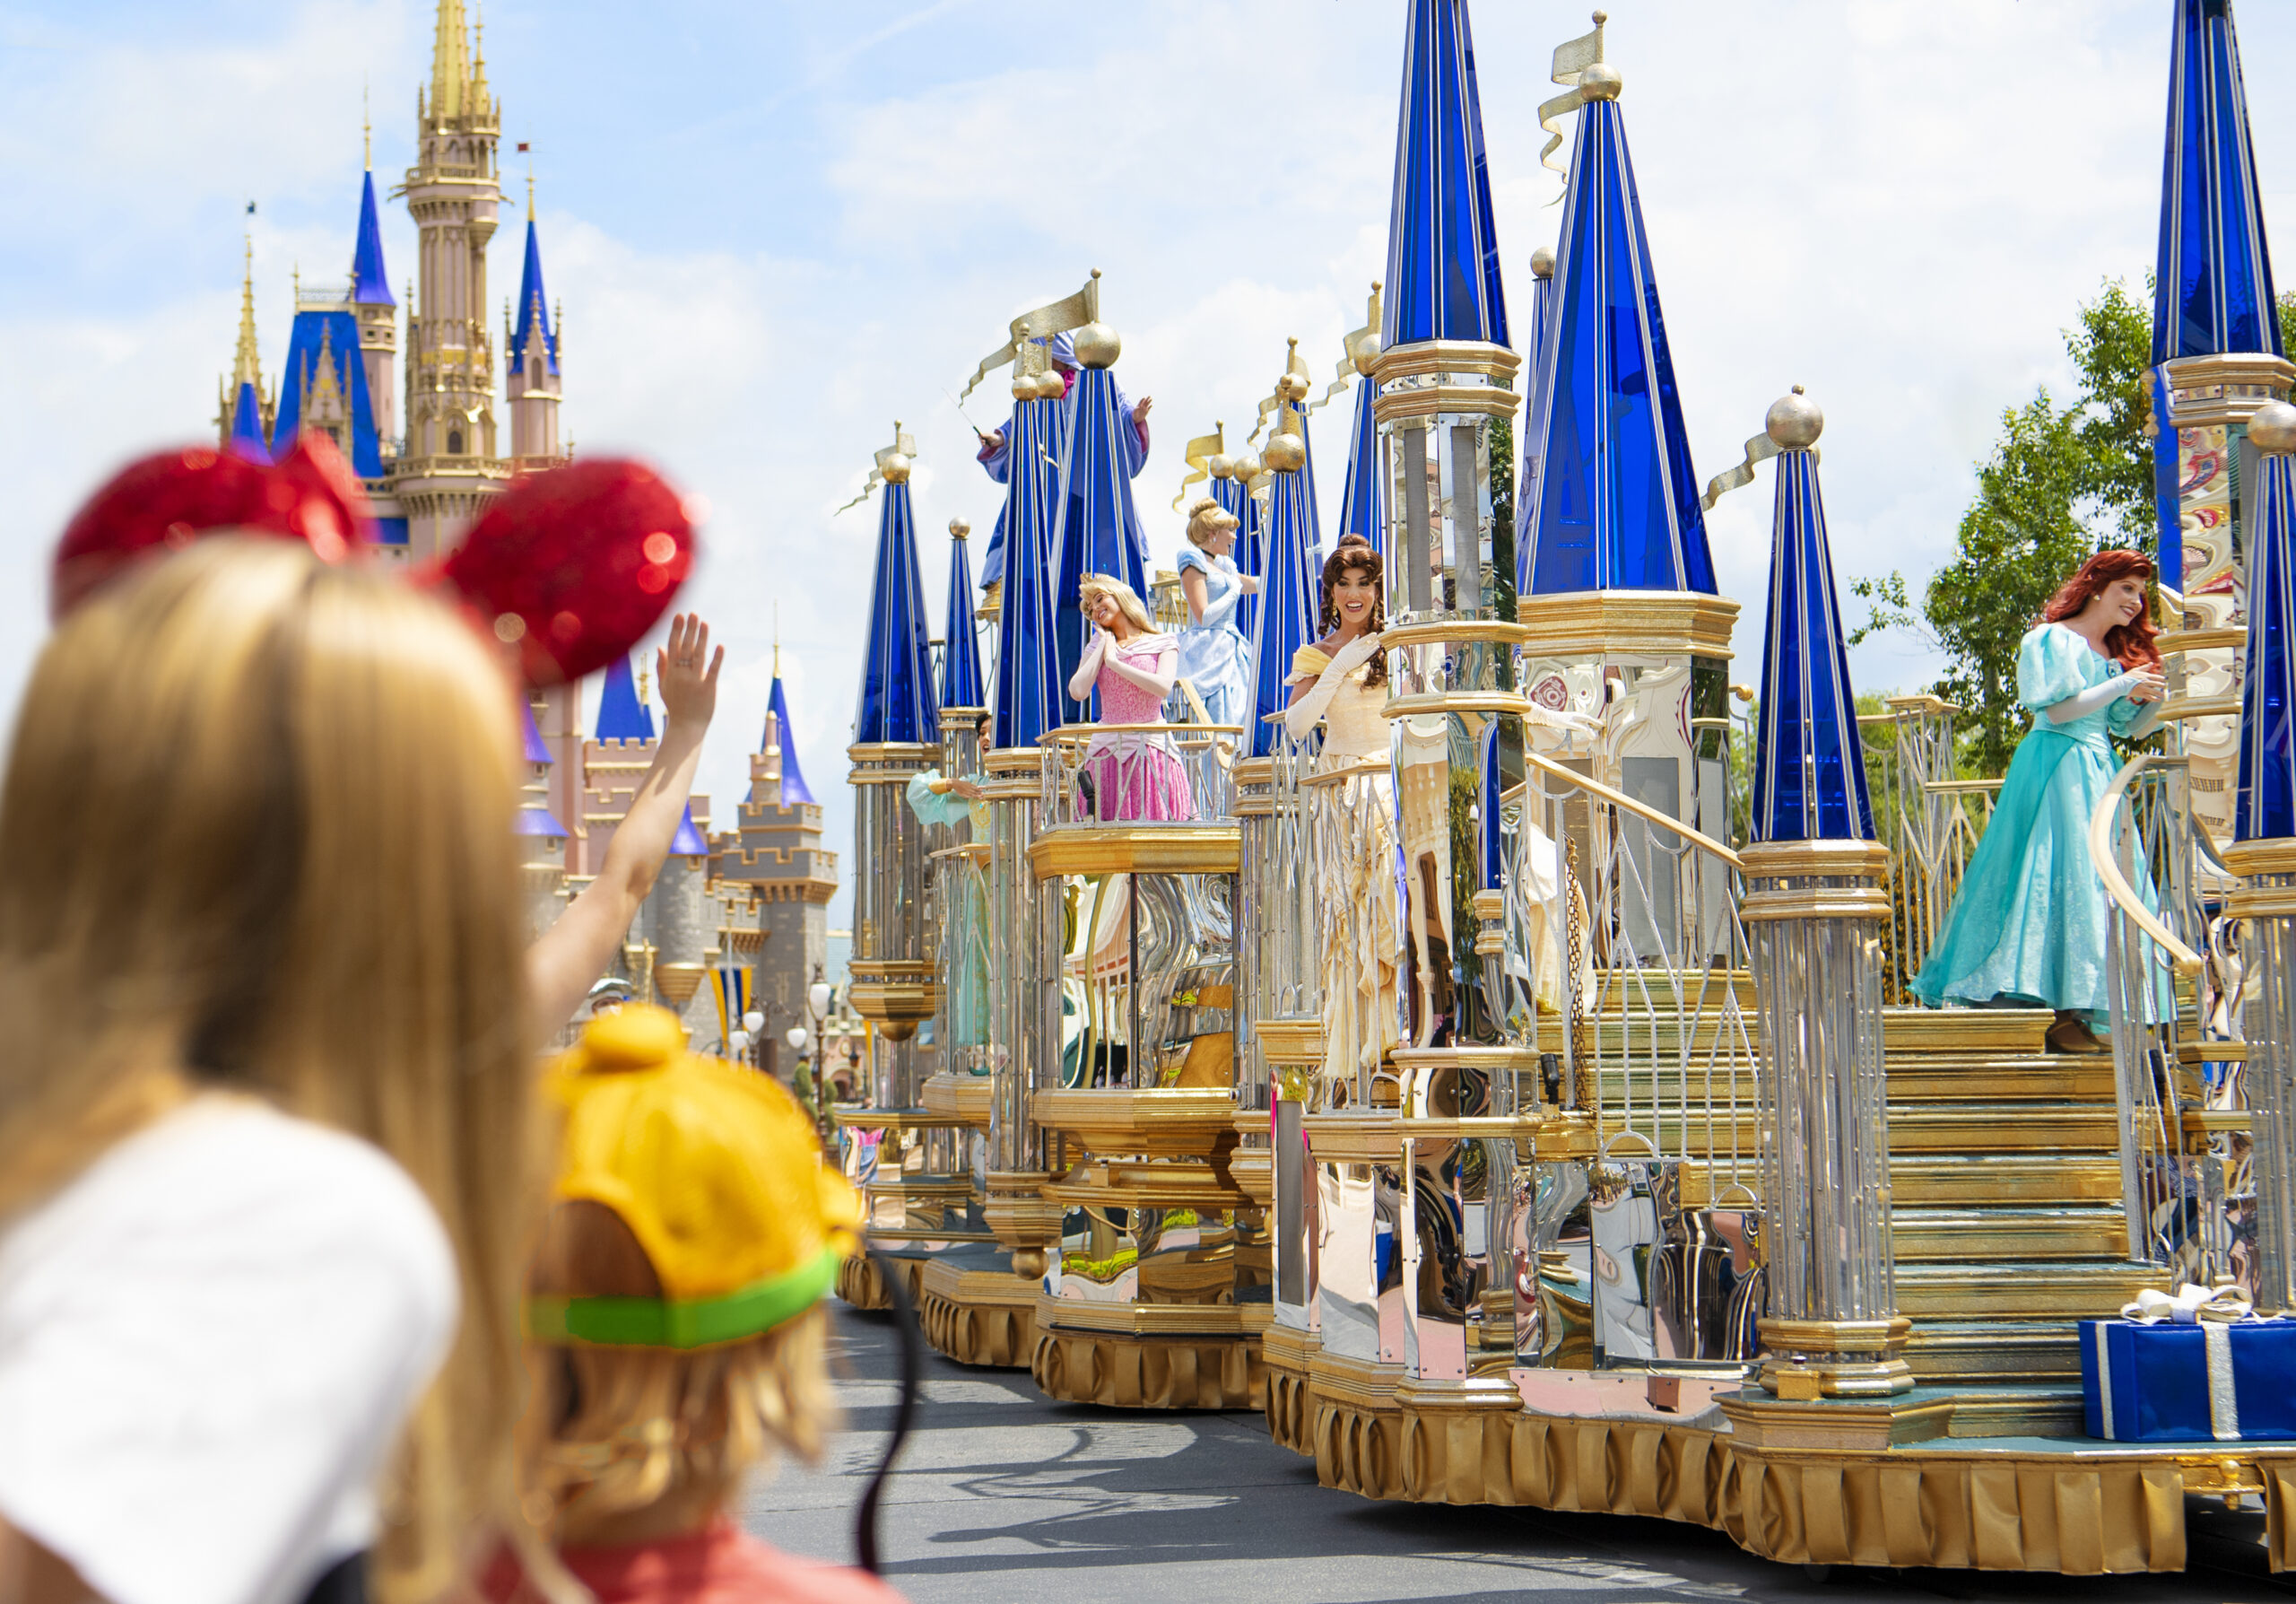 Attractions and Theme Parks